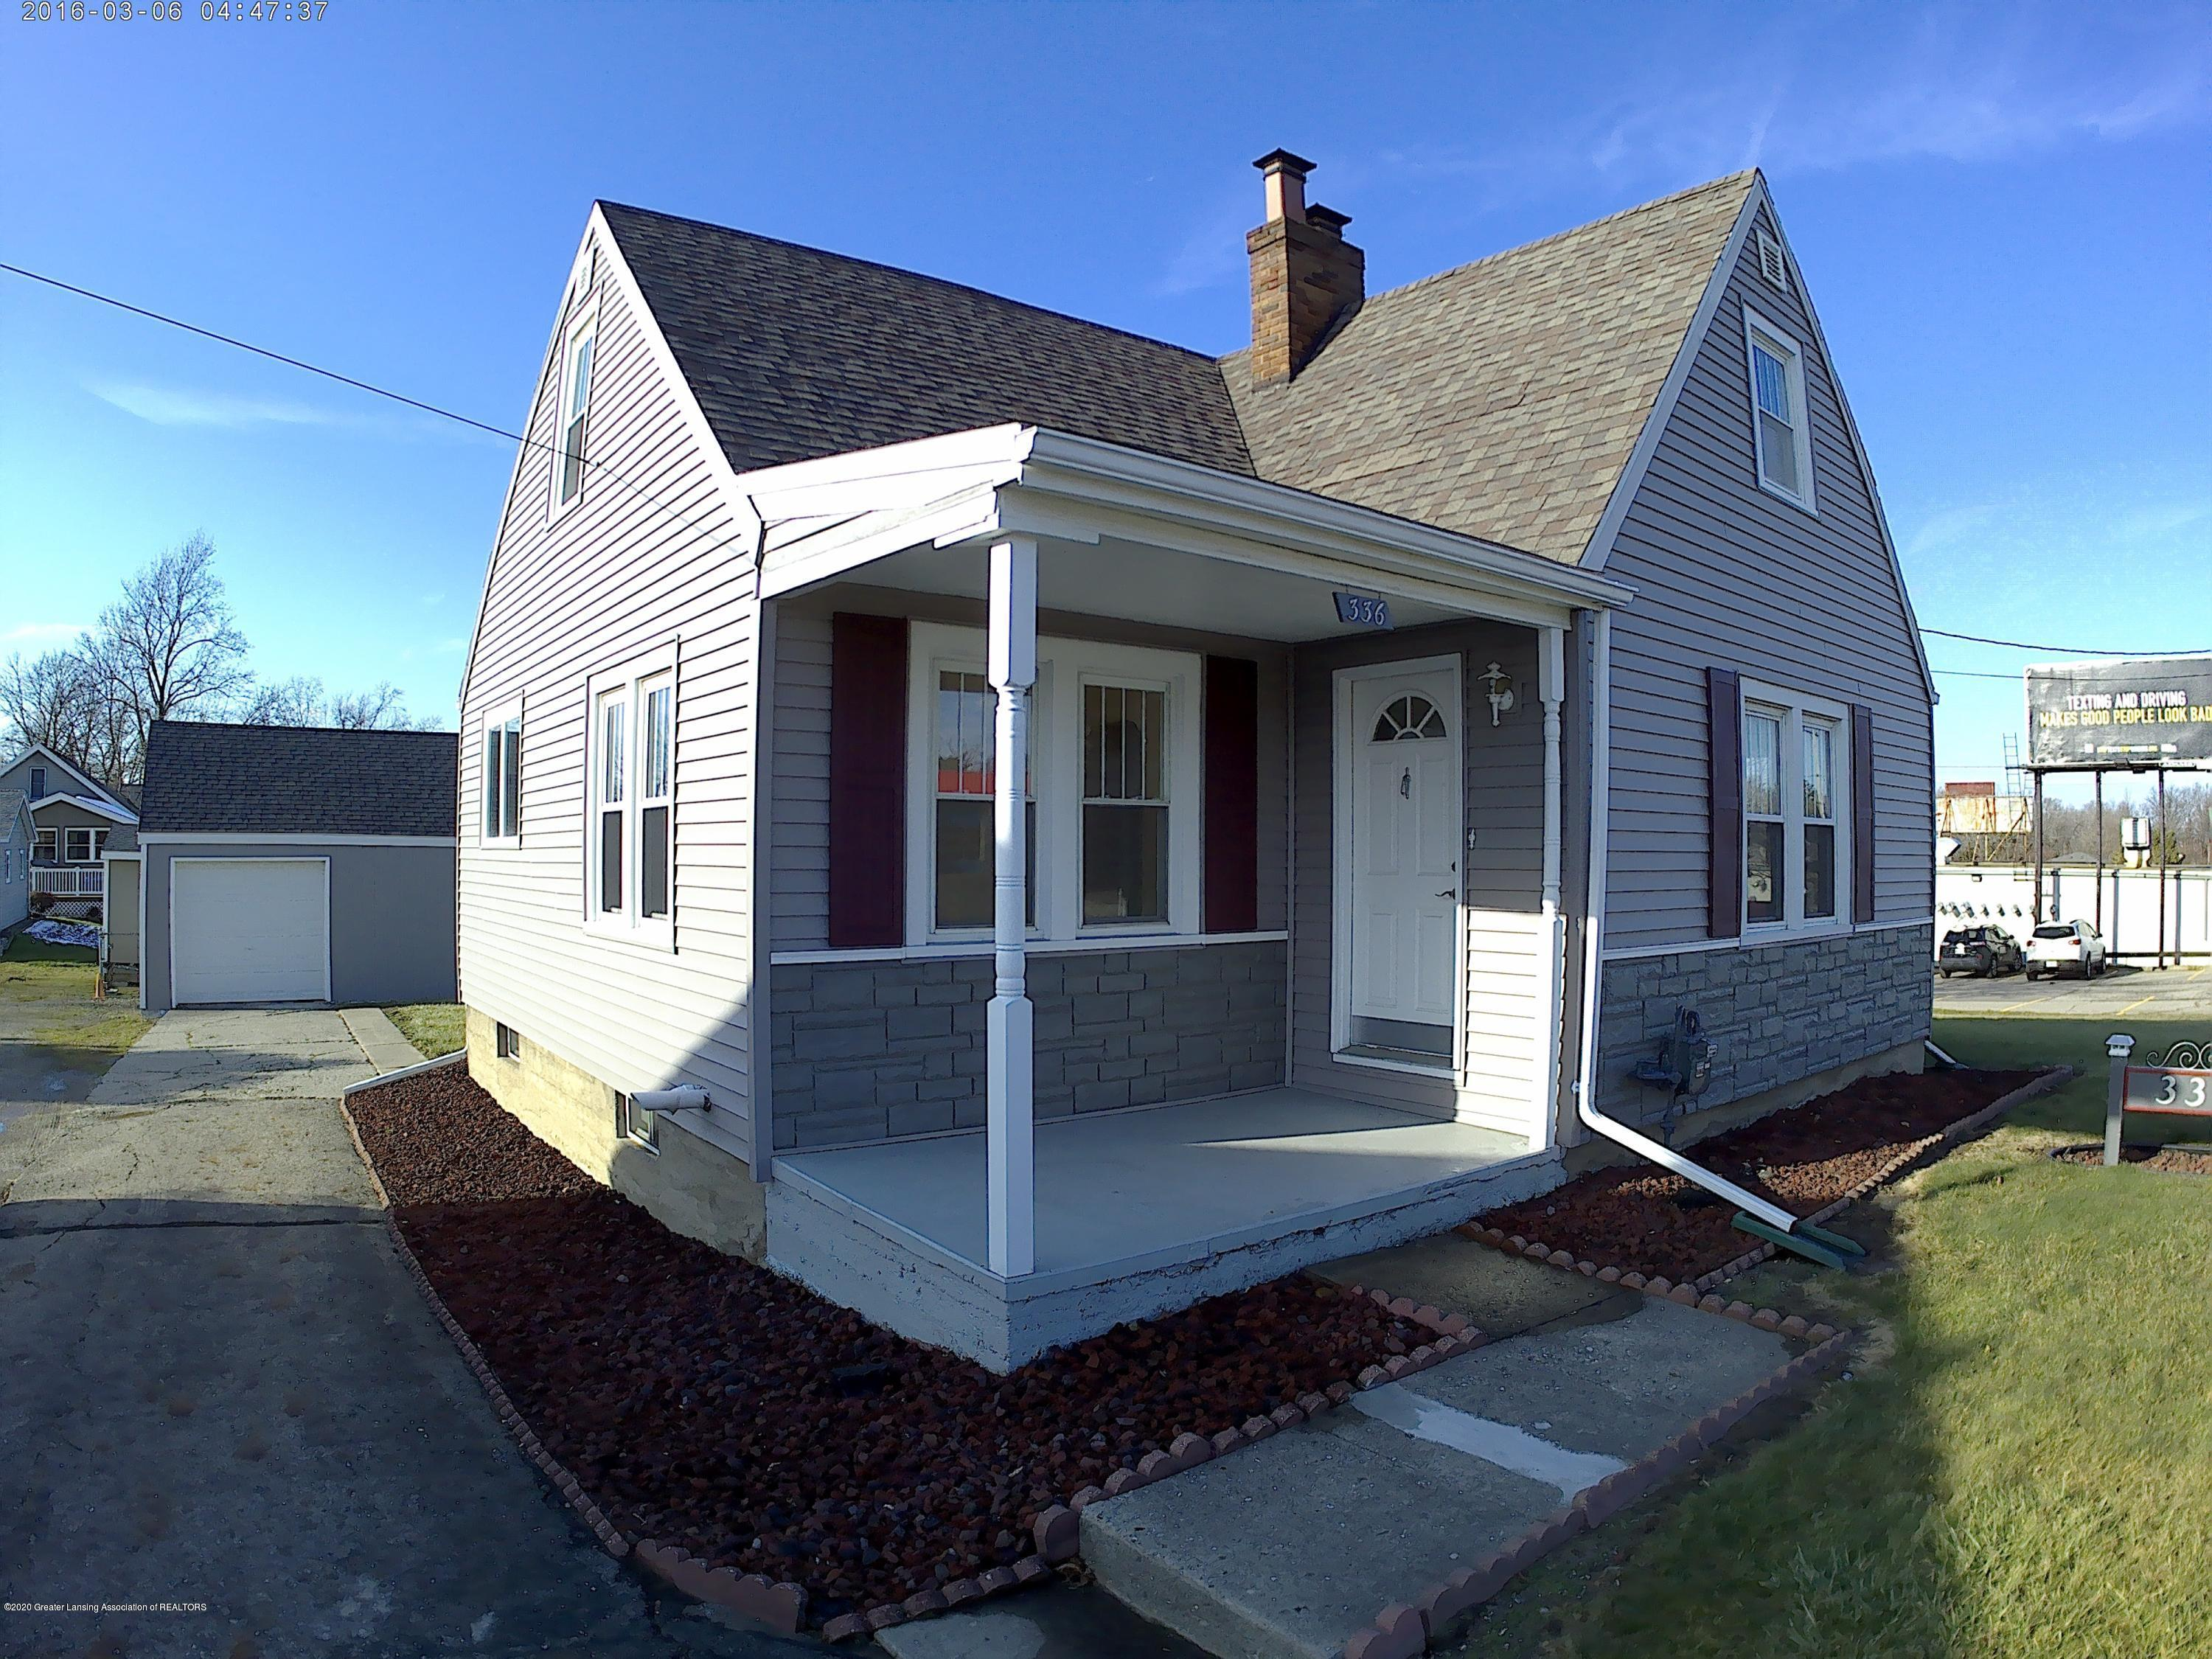 336 S Waverly Rd - CONNIE - 1